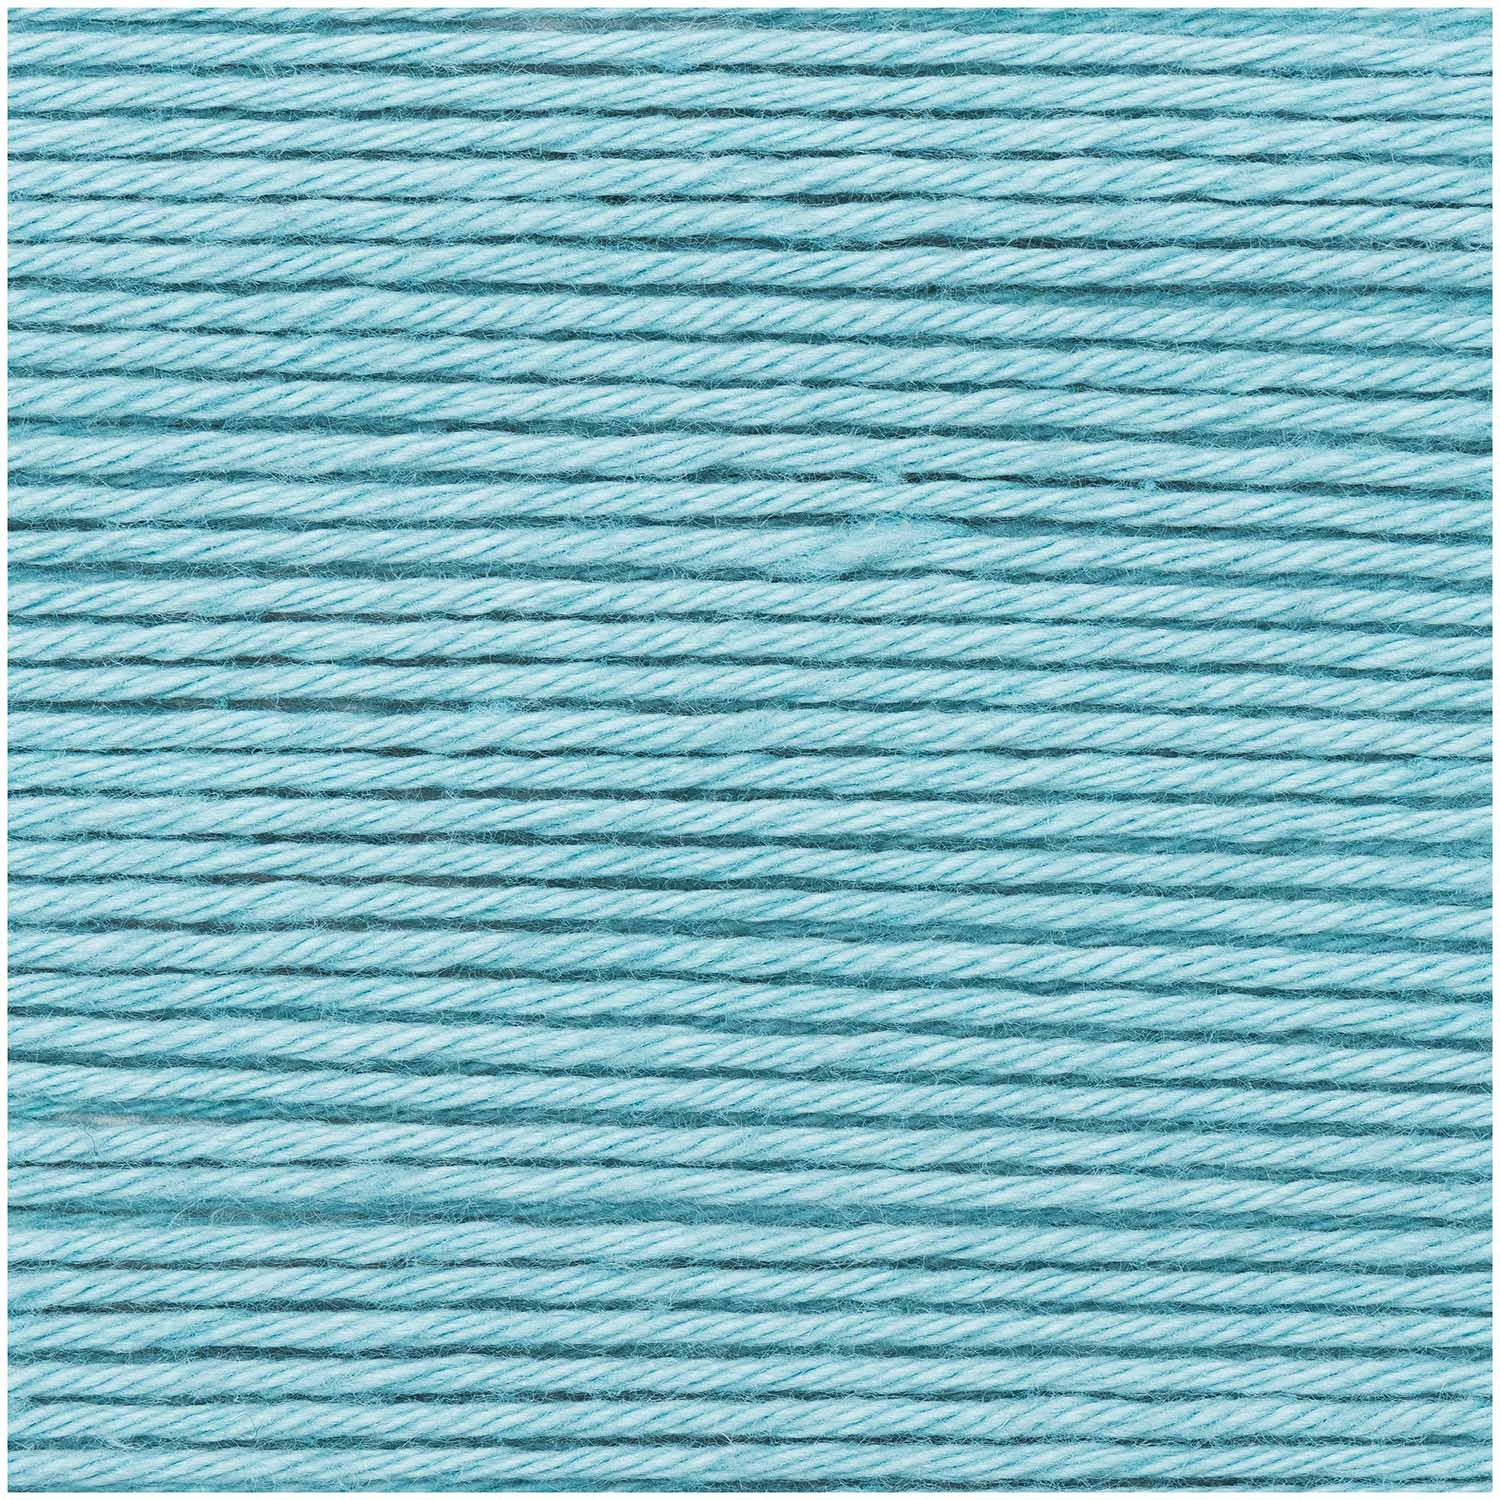 Rico Rico Baby Cotton Soft - 056 - Turquoise